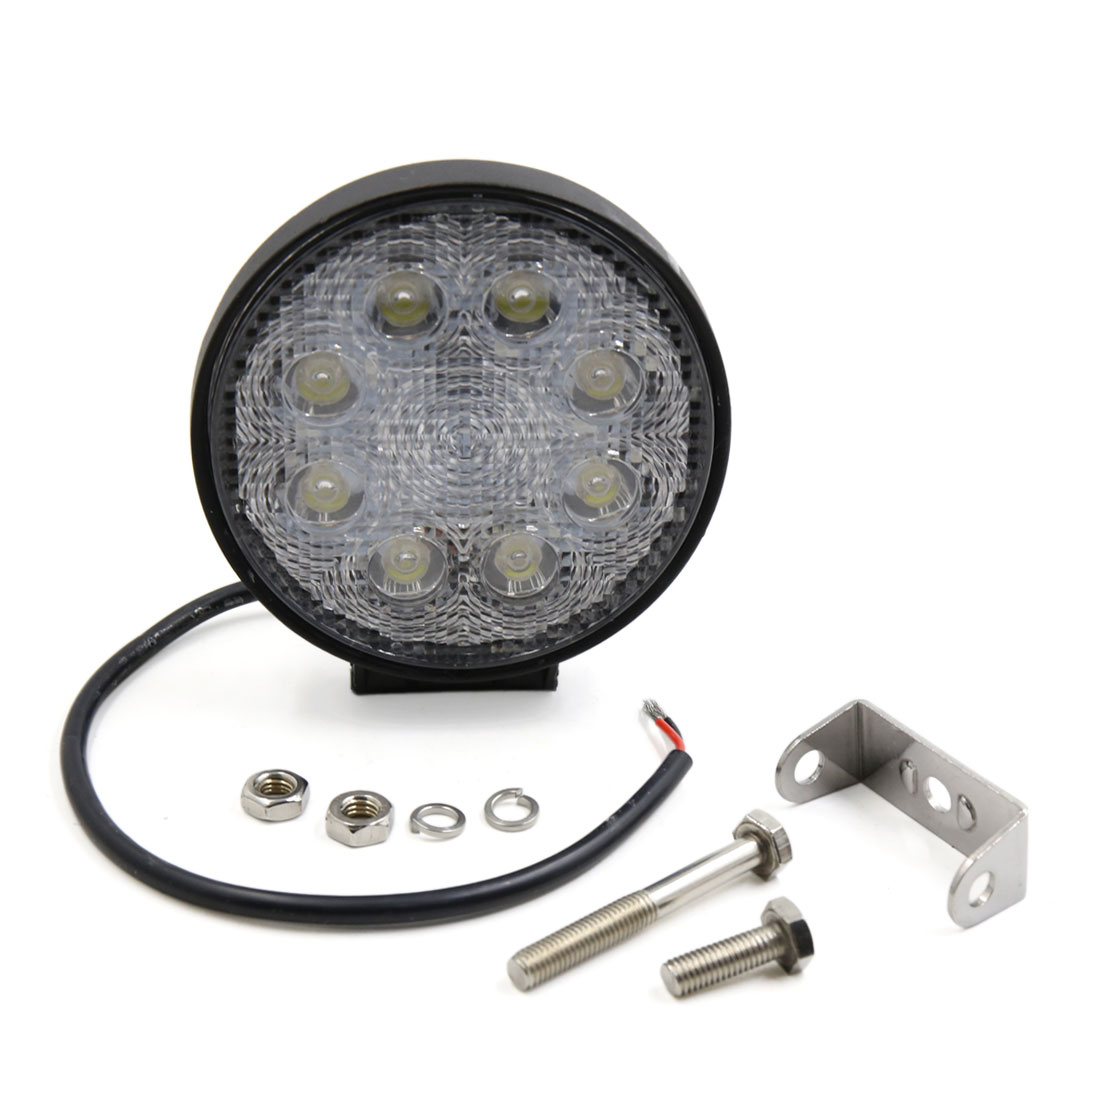 DC 12V 24W Round Flood Beam 8 LED Work light Fog Driving Lamp for Auto Car Internal